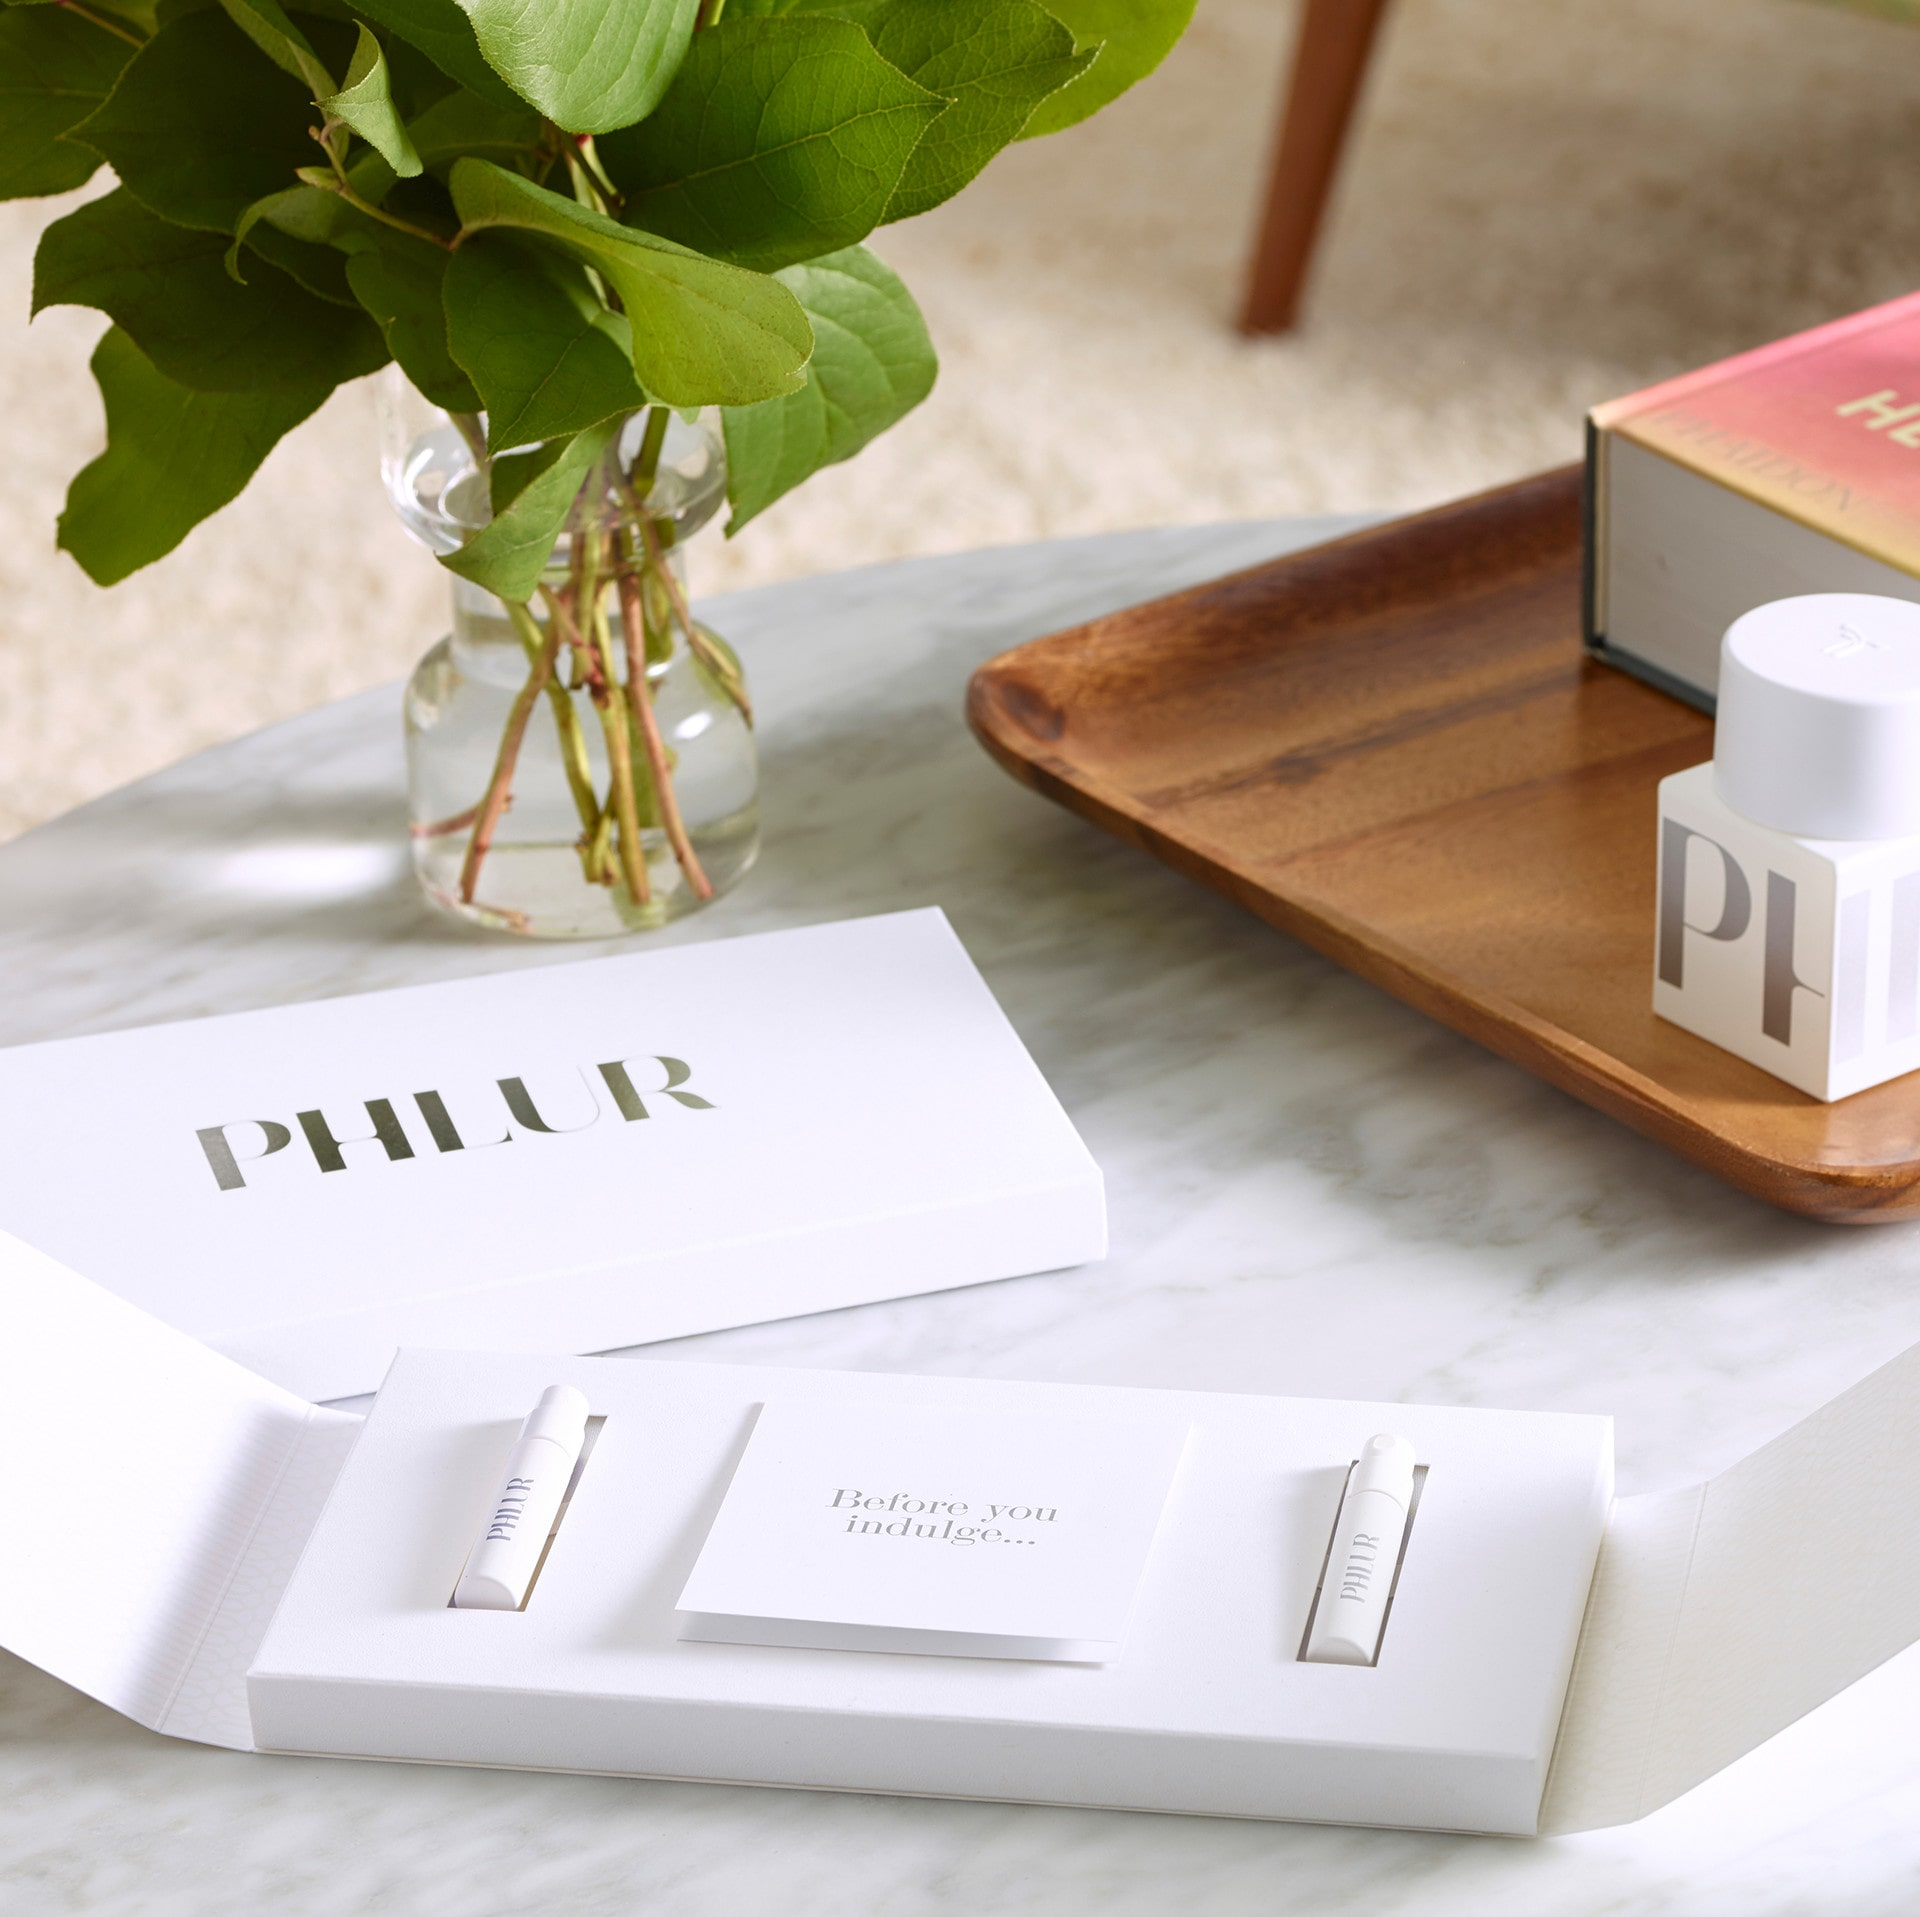 The PHLUR fragrance sample set lets you try fragrances on your skin and in your space. The way it should be #PHLUR